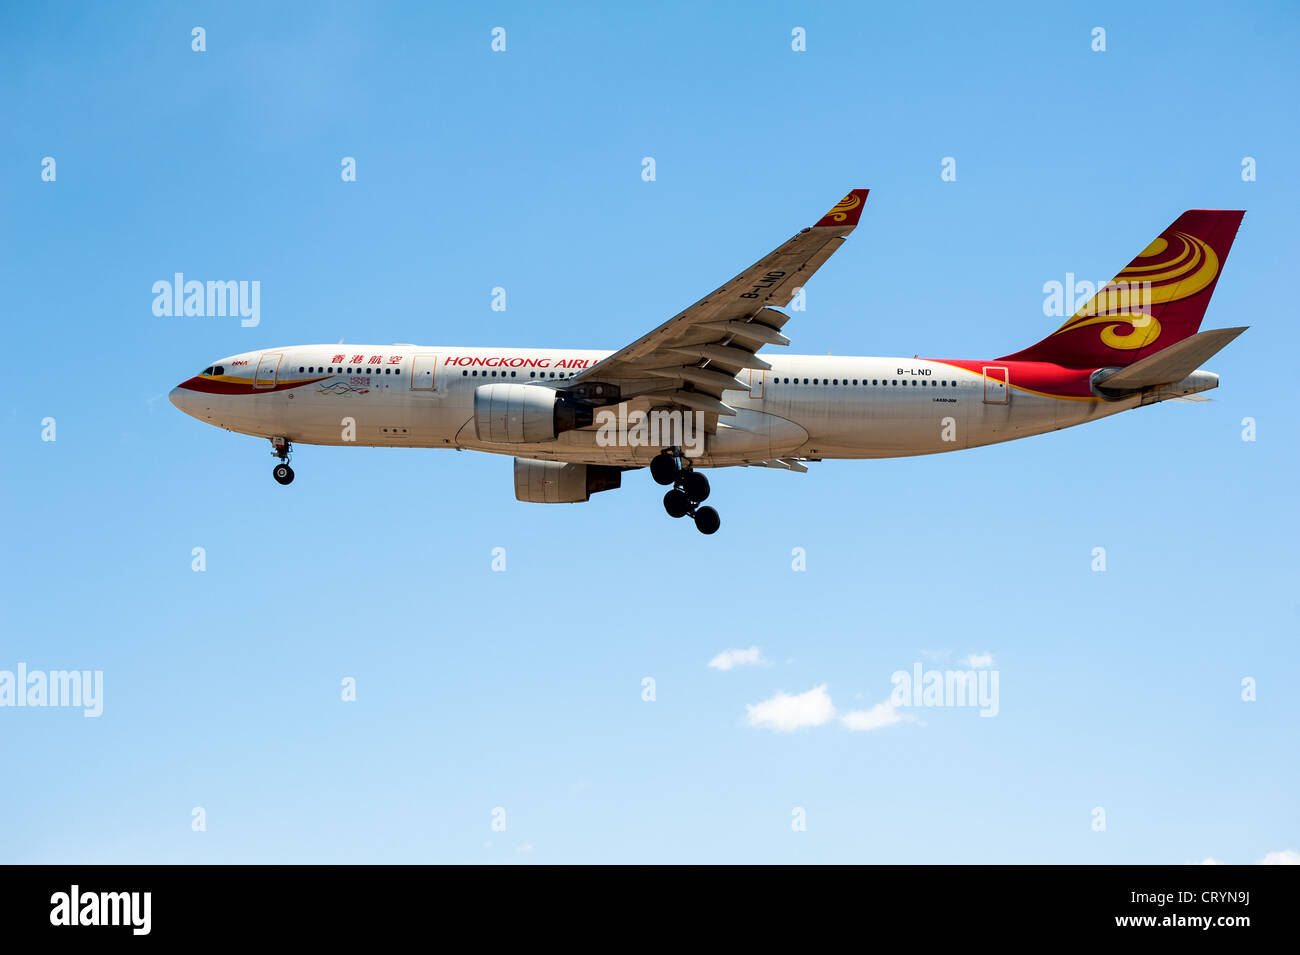 Hongkong Airplane A330-200 is ready to land on the airport - Stock Image